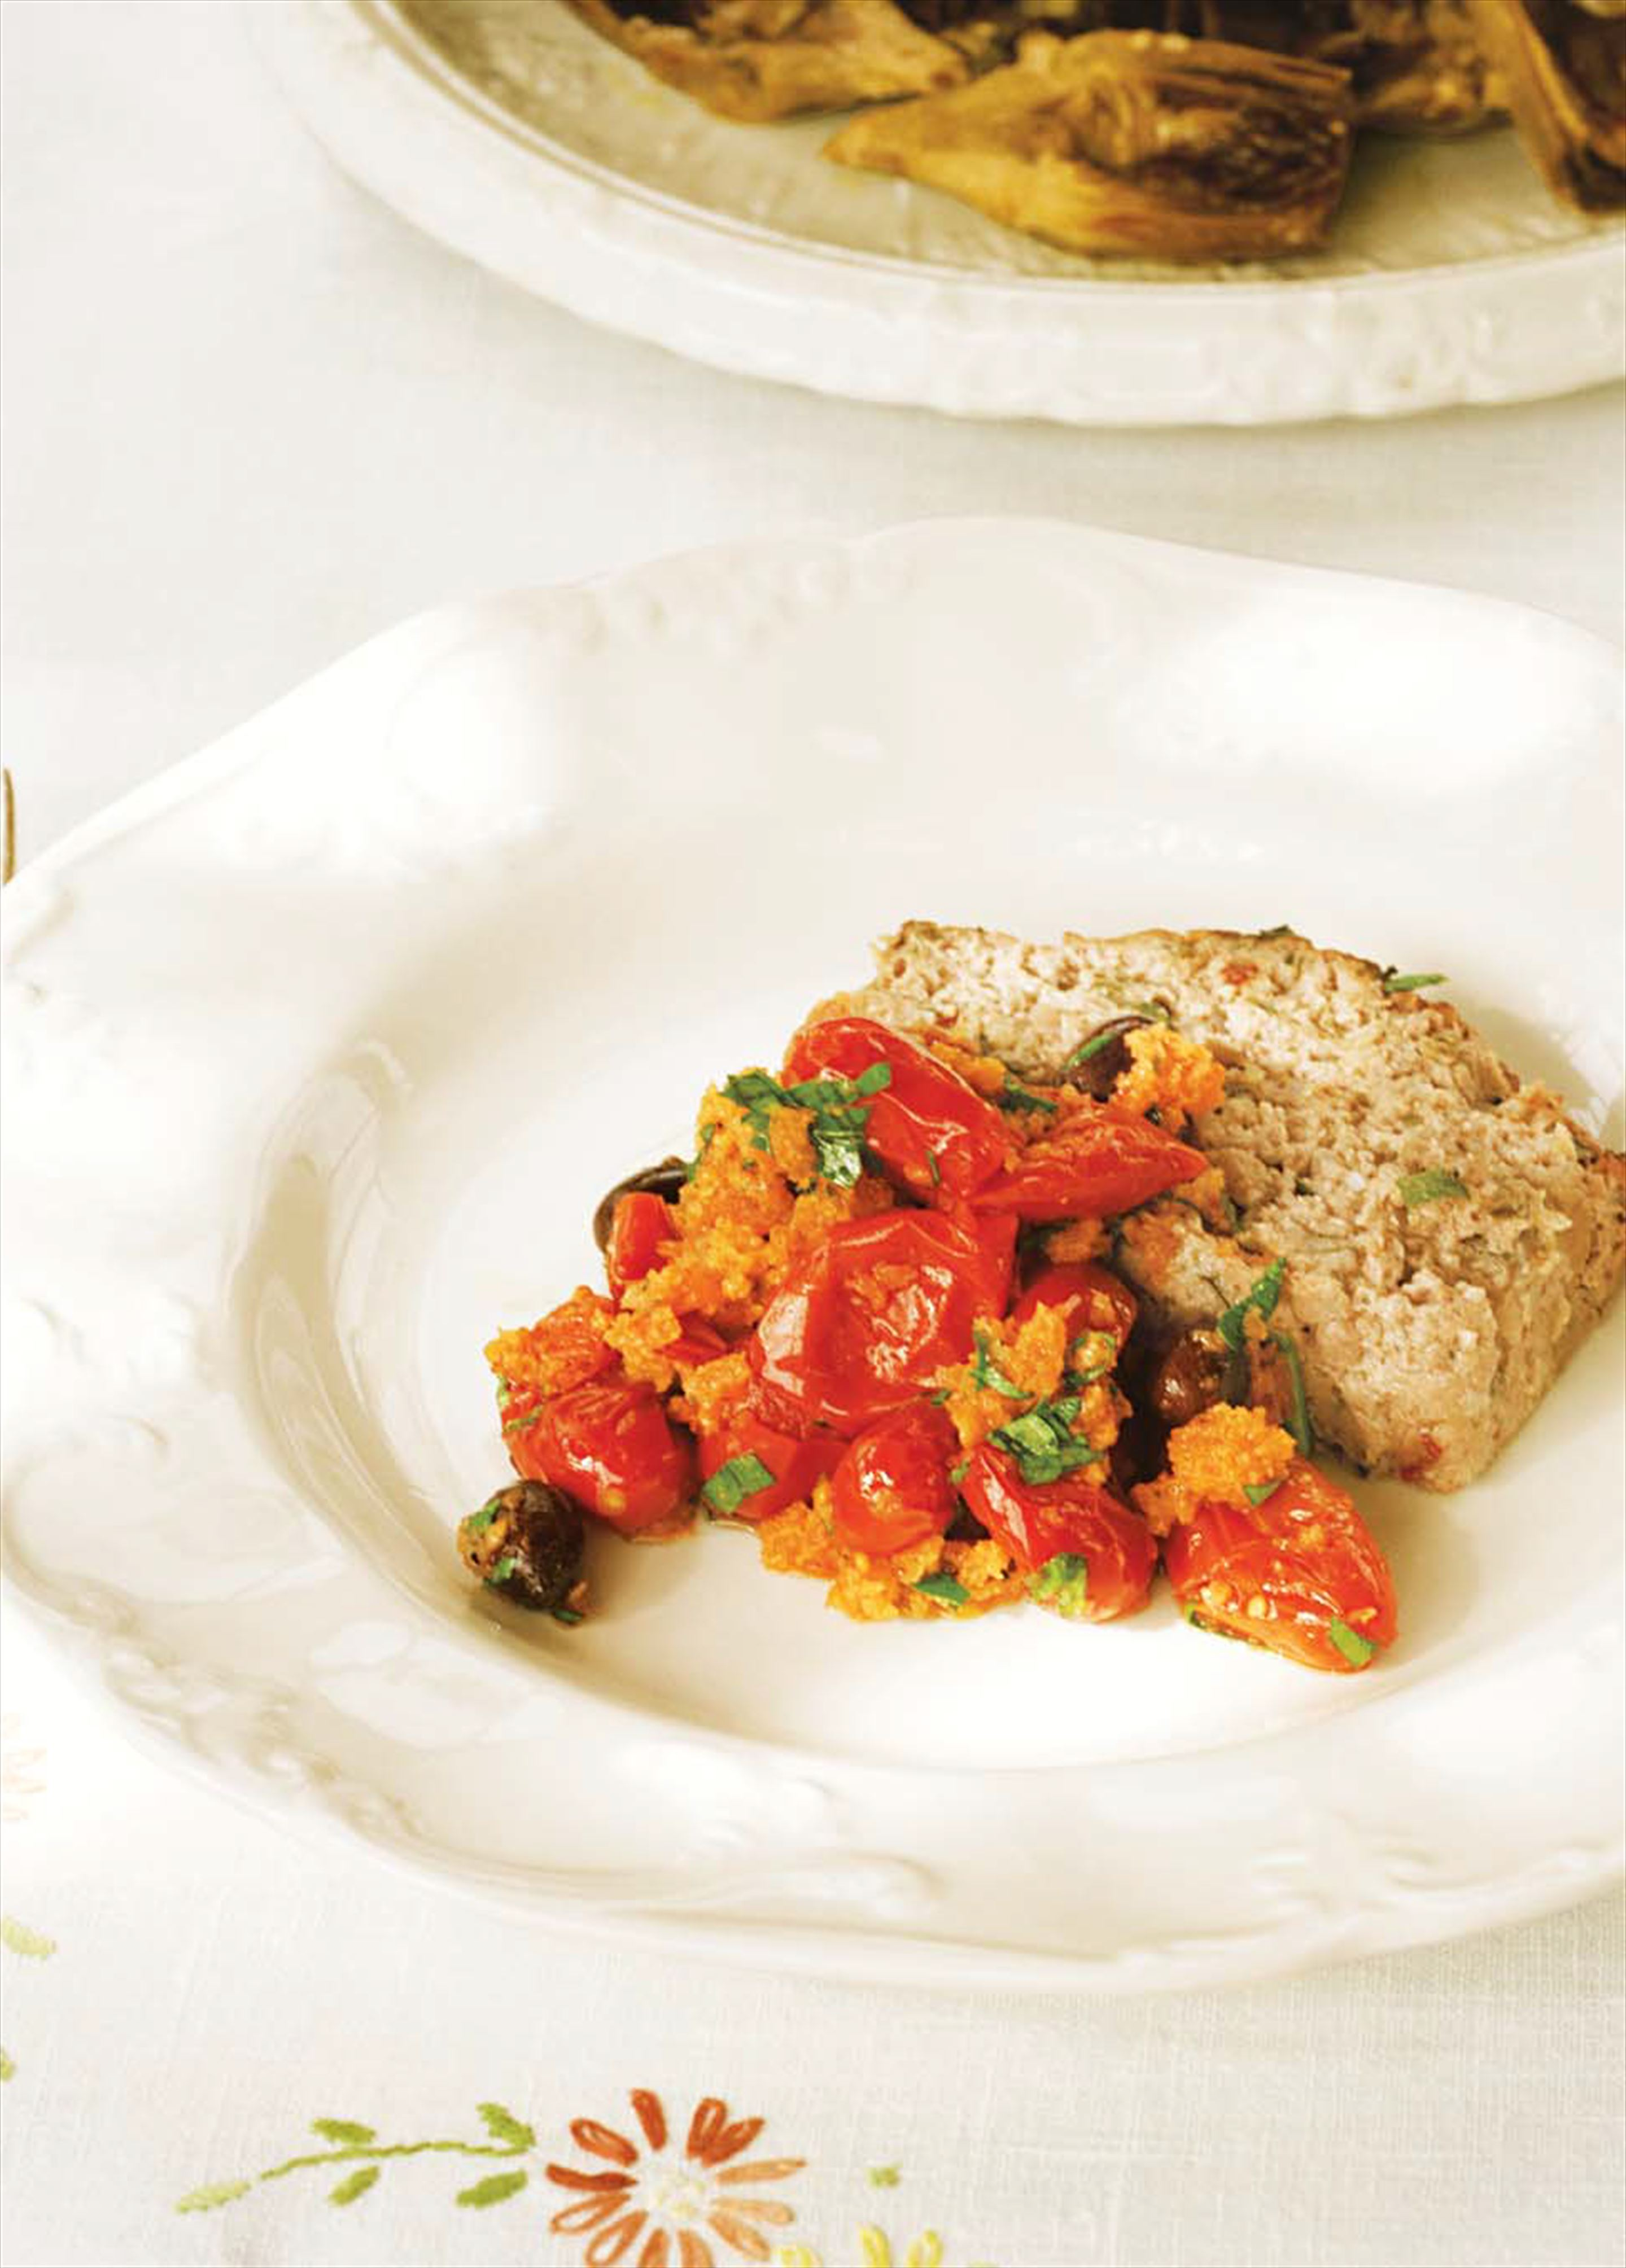 Veal and pork meatloaf with tomato and herb sauce